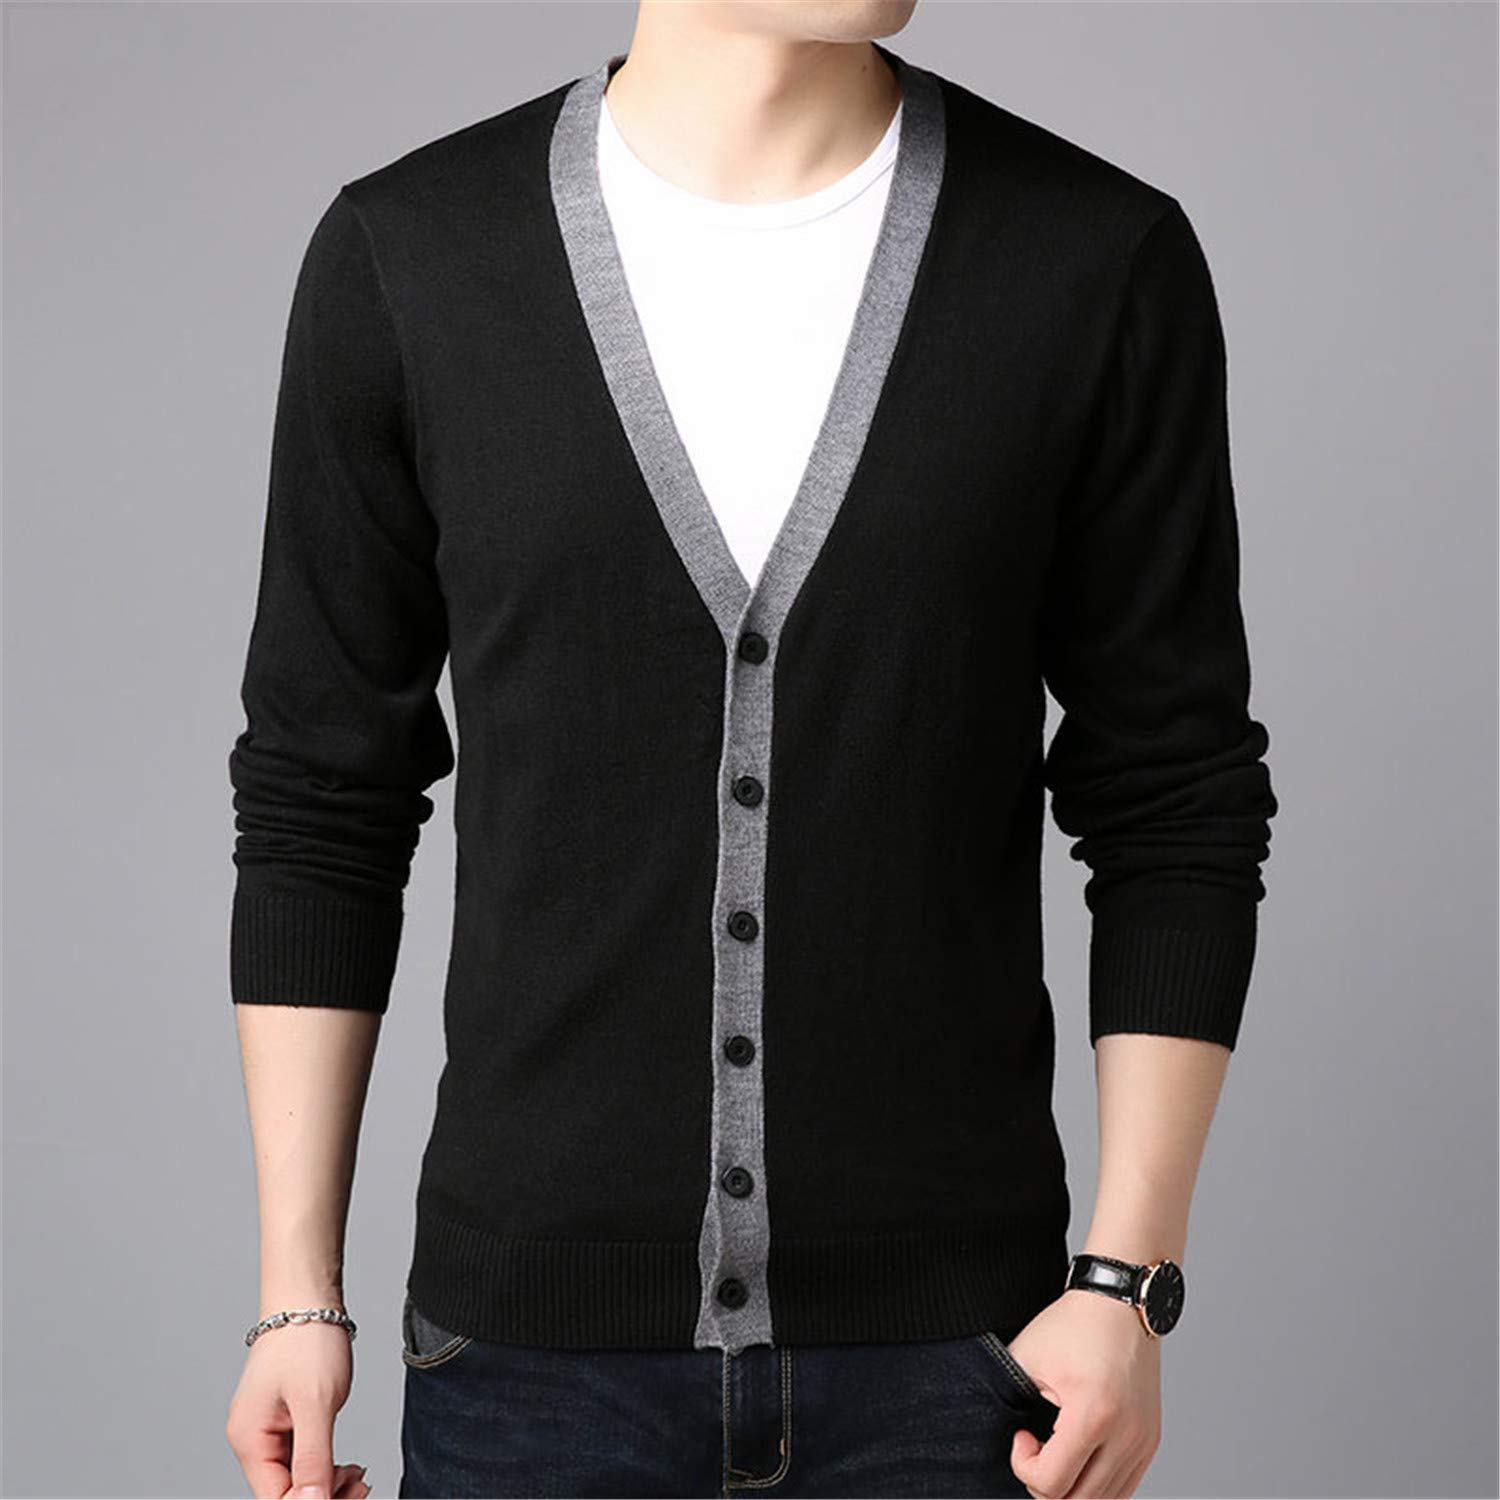 Cyose Fashion Sweater Men Casual V-Neck CardiganKnitted Cashmere Wool Mens Sweaters